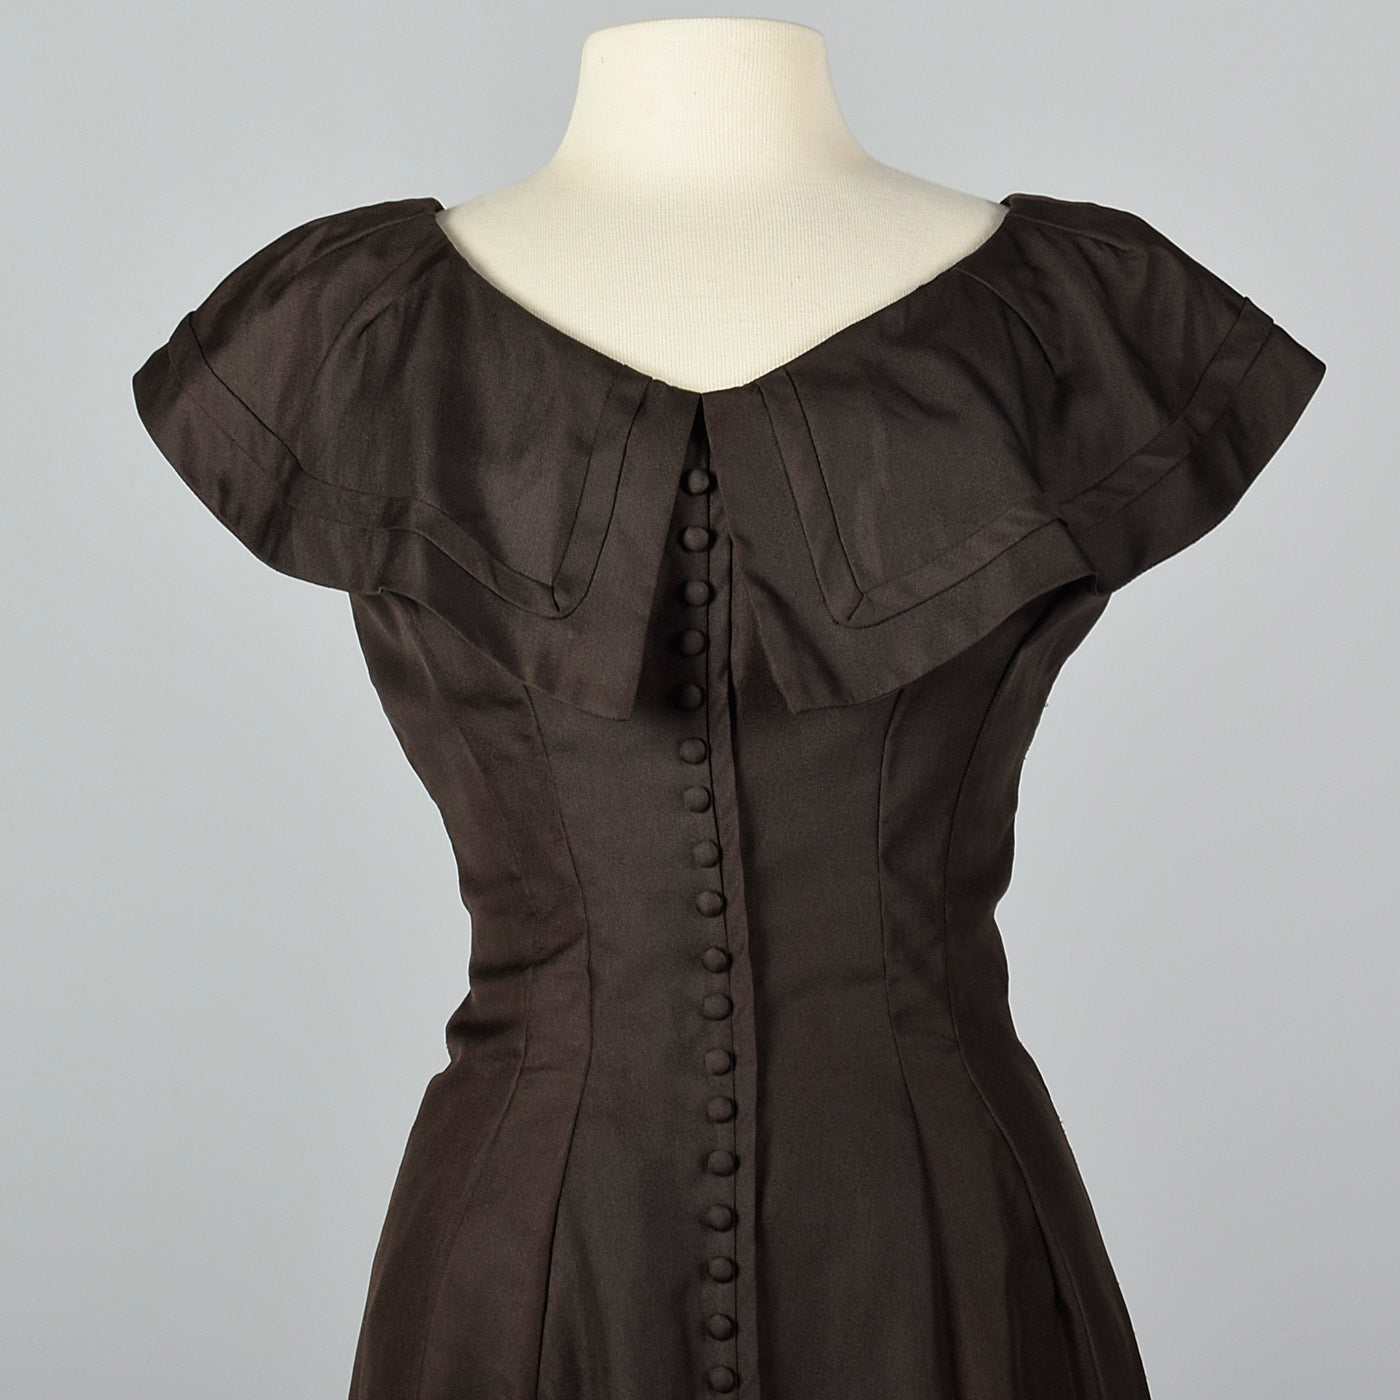 1950s Suzy Perette Dark Brown Wiggle Dress